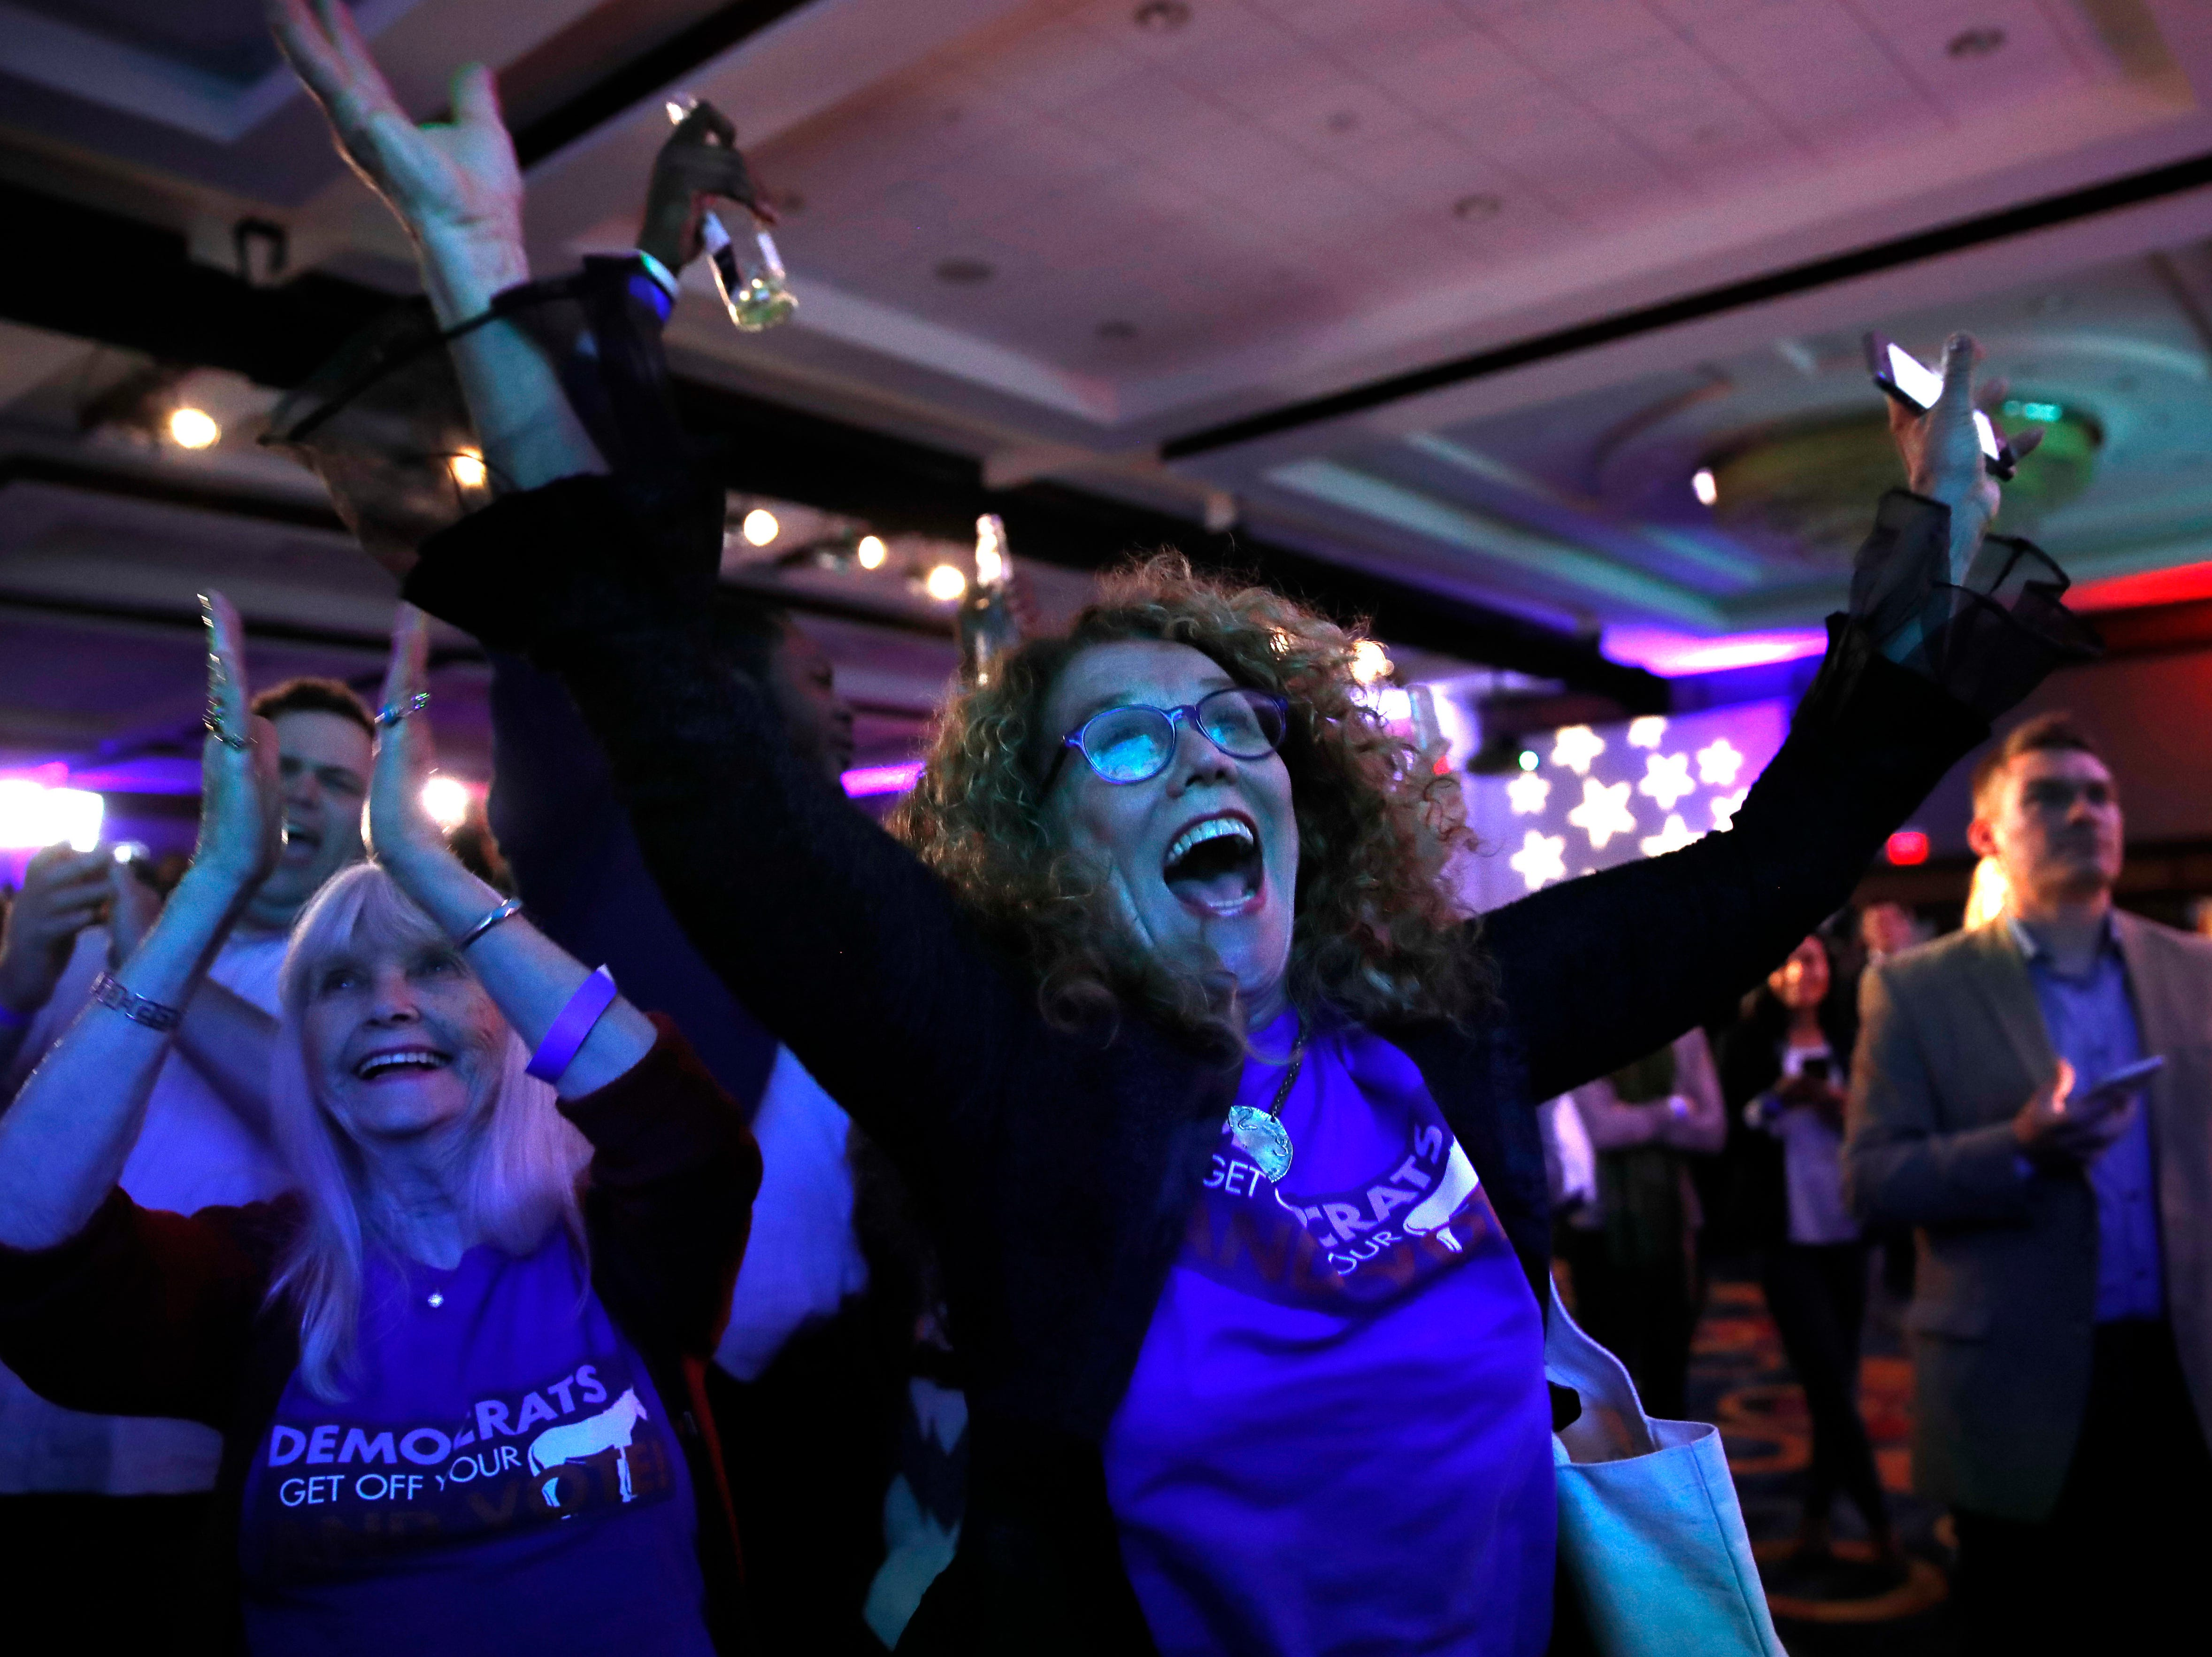 Sydney Crawford, 84, left, of New York, and JoAnn Loulan, 70, of Portola Valley, Calif., cheer as election returns come in during a Democratic party election night event at the Hyatt Regency Hotel in Washington on Tuesday, Nov. 6, 2018.